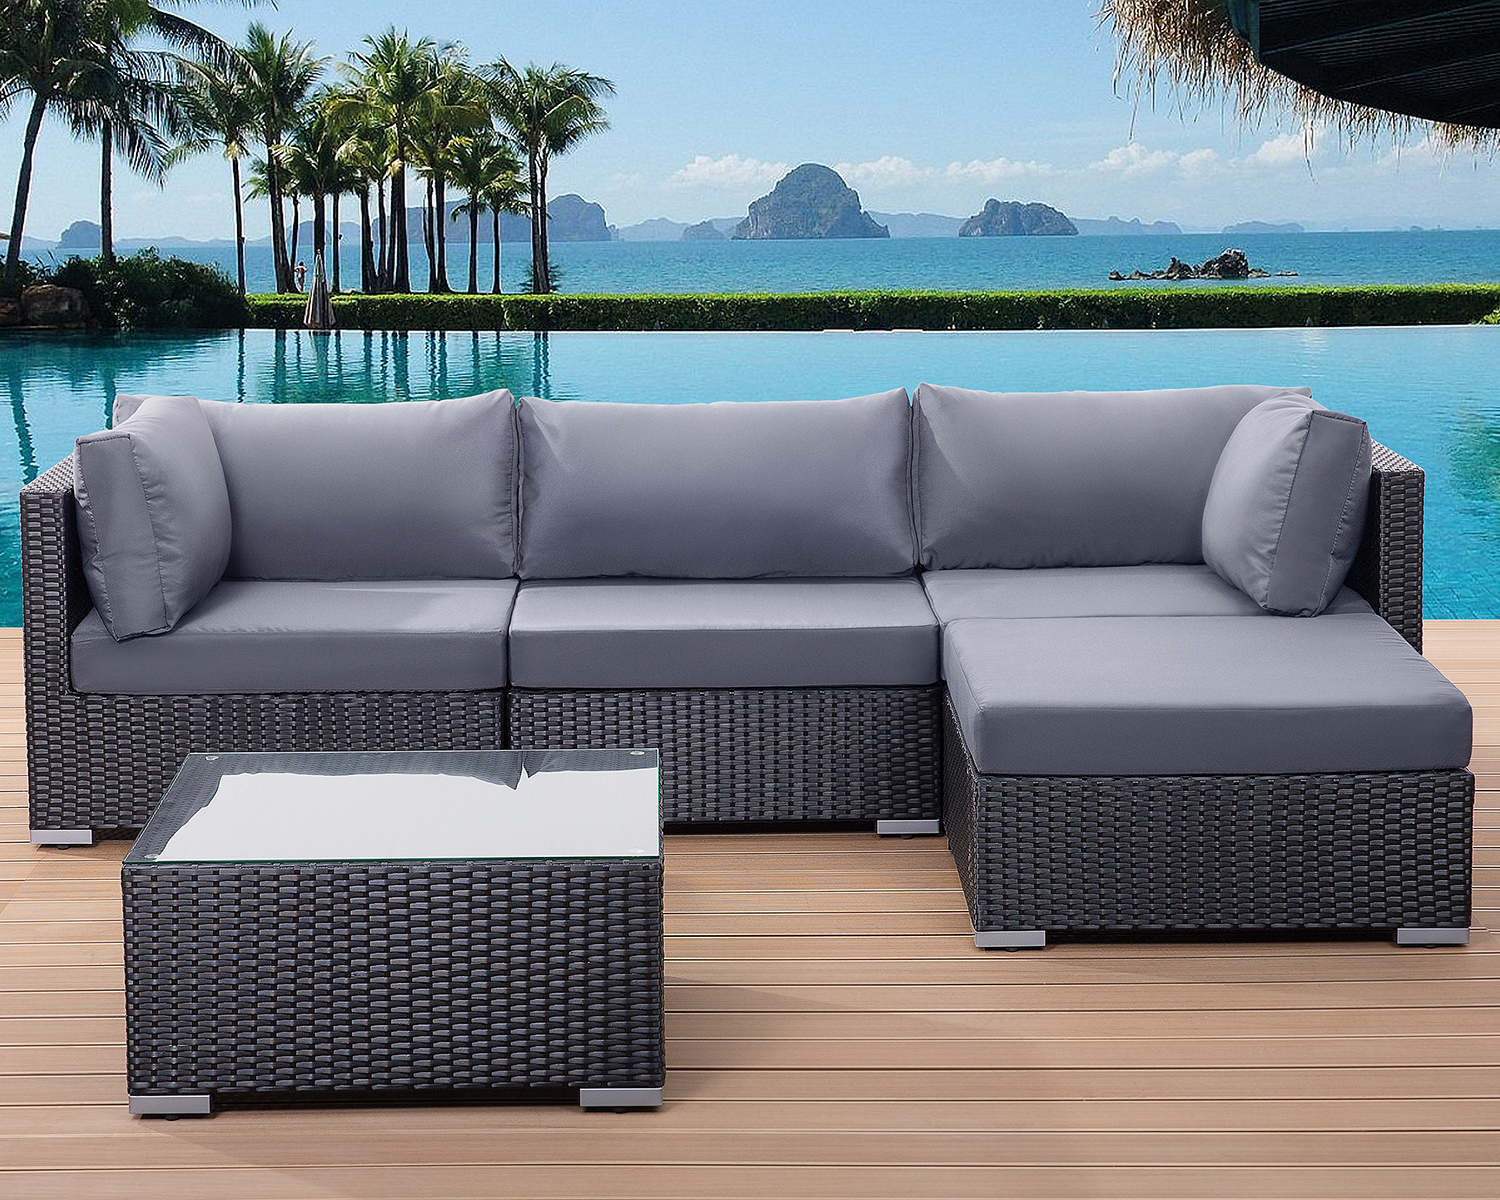 patio settee garden poly rattan lounge sofa set. Black Bedroom Furniture Sets. Home Design Ideas